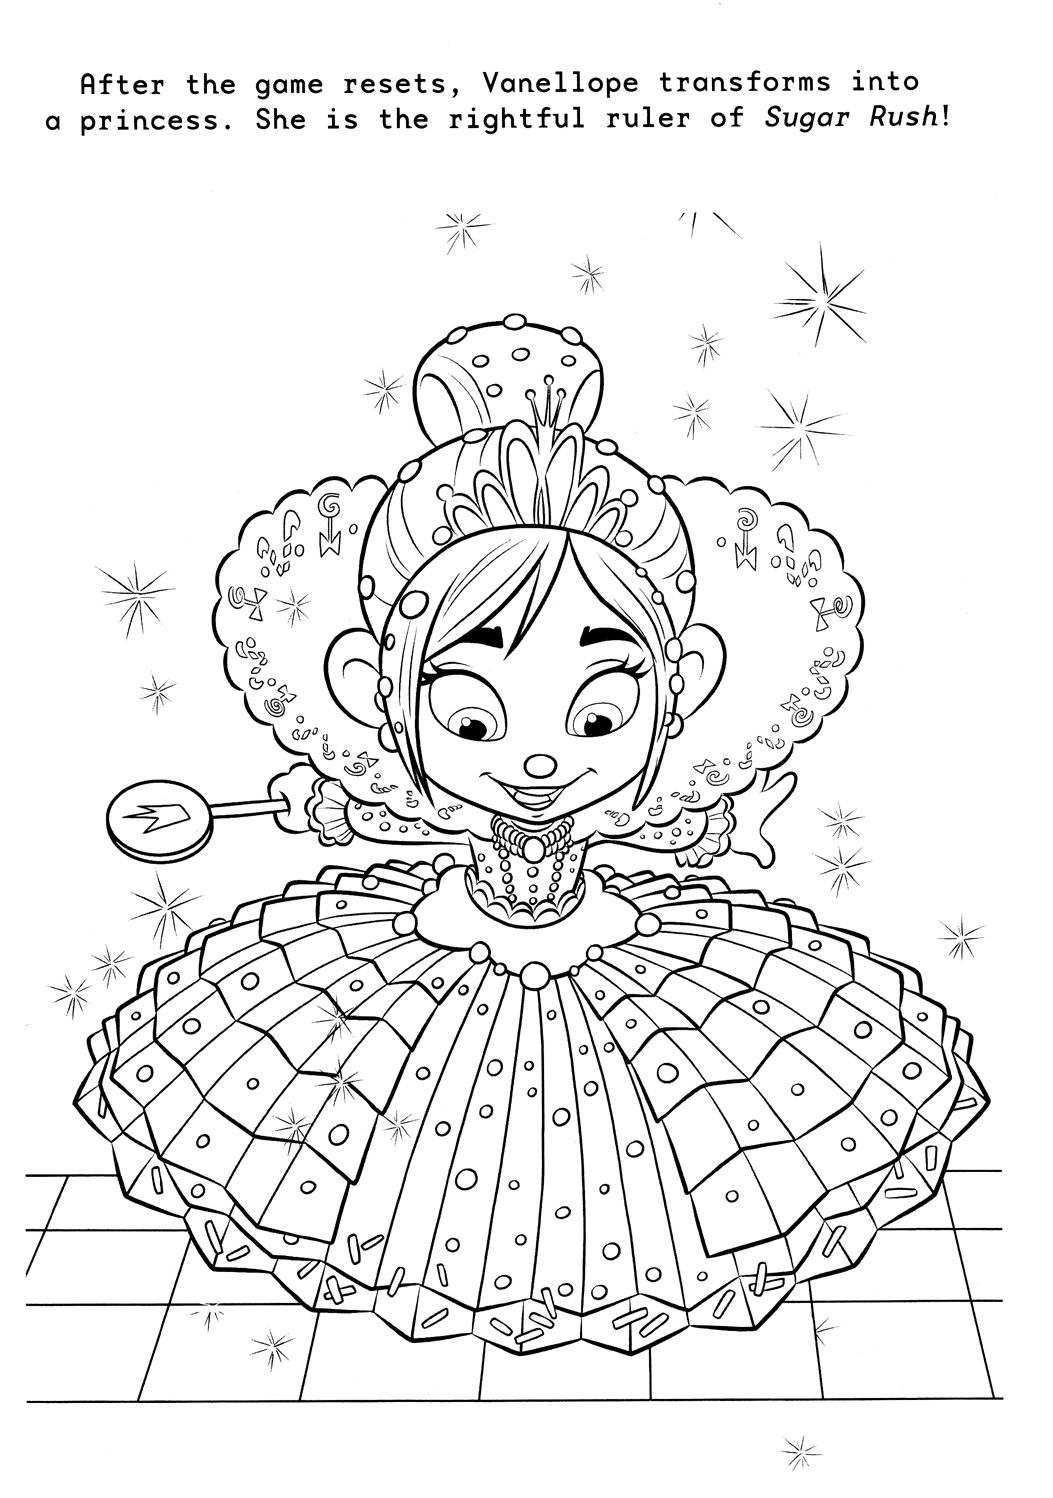 Coloringdisney Disney Coloring Pages Princess Coloring Pages Coloring Pages